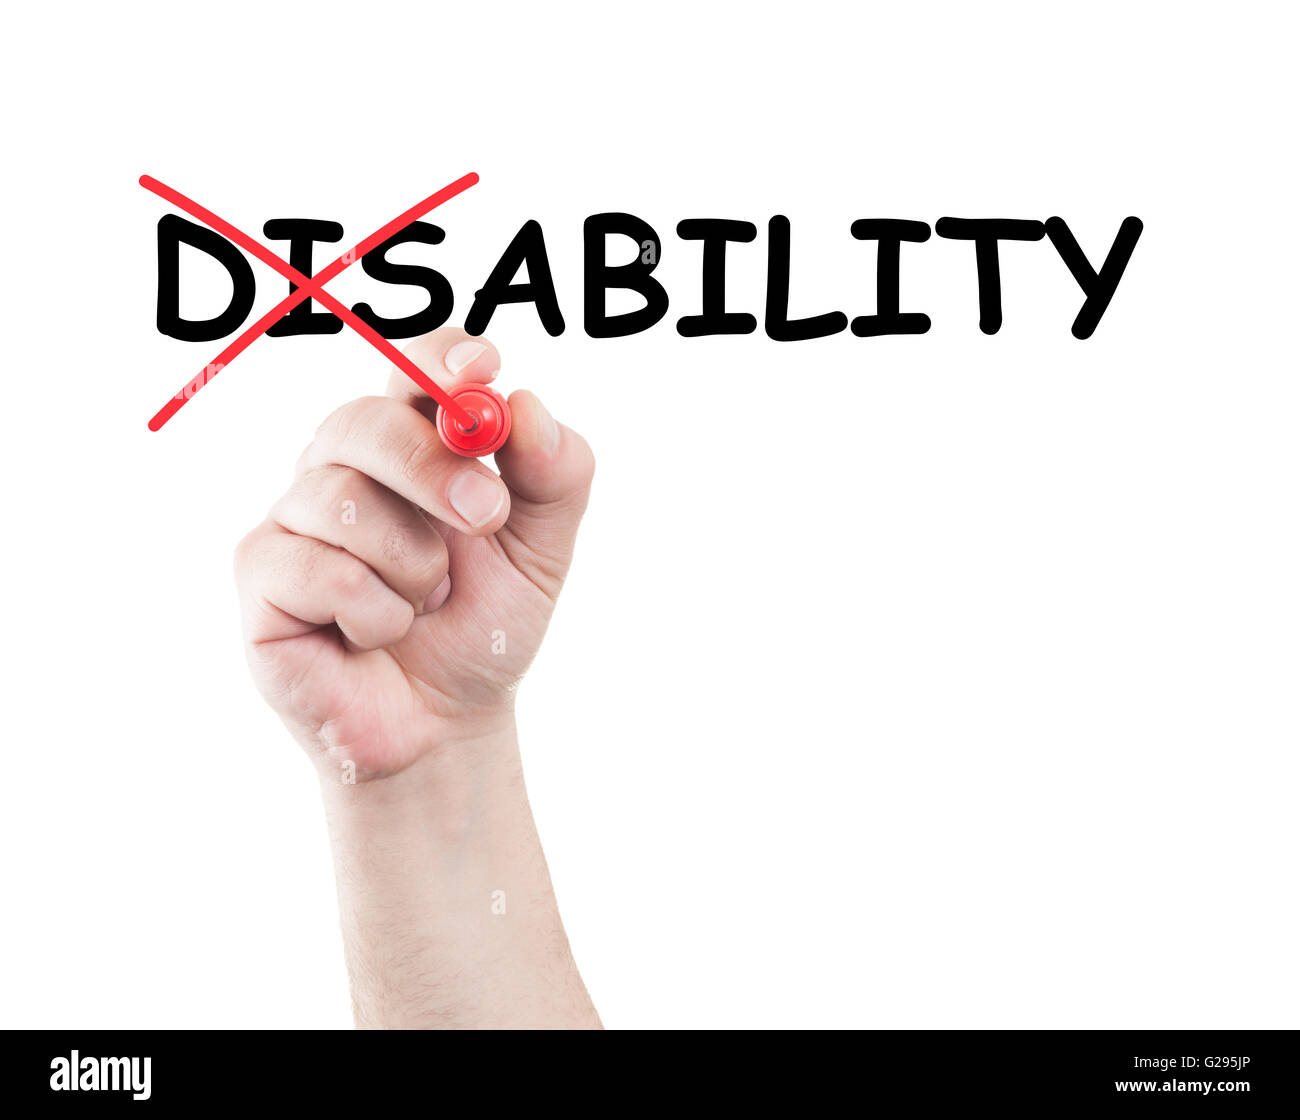 Disability concept written by hand using a marker on transparent wipe board with white background and copy space - Stock Image